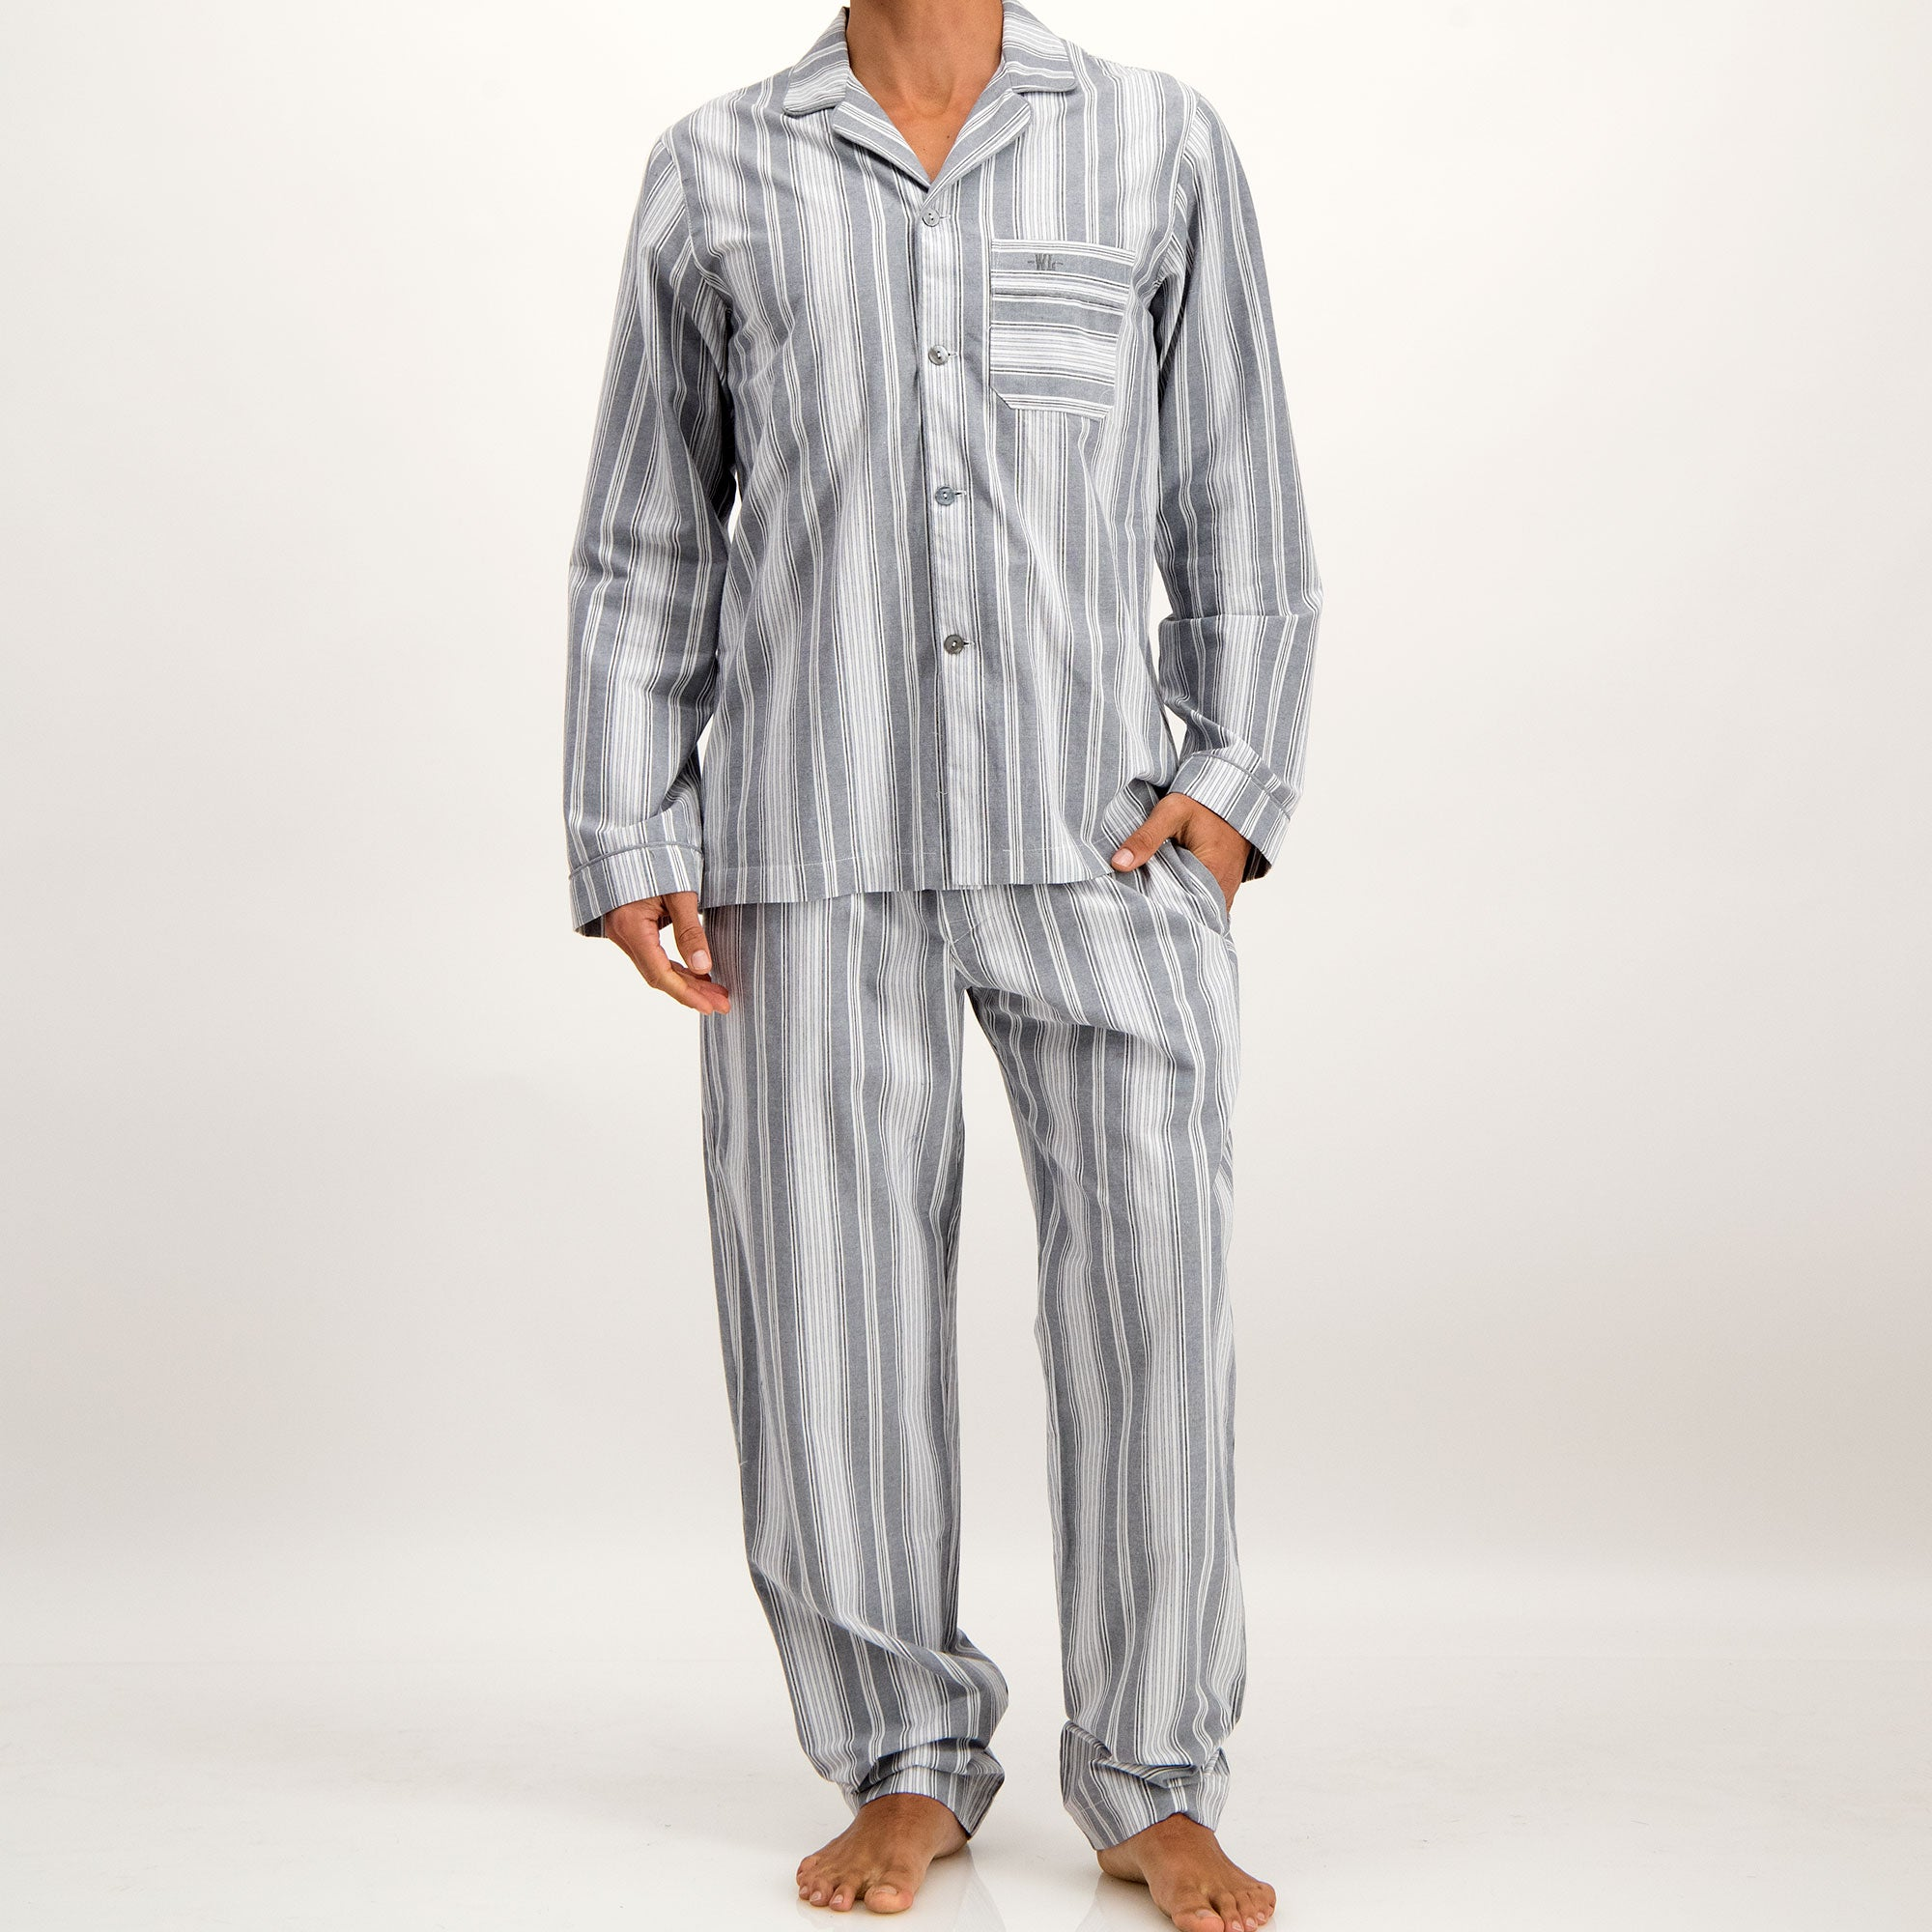 Mens Long Pyjamas Crosby Stripe Charcoal - Woodstock Laundry